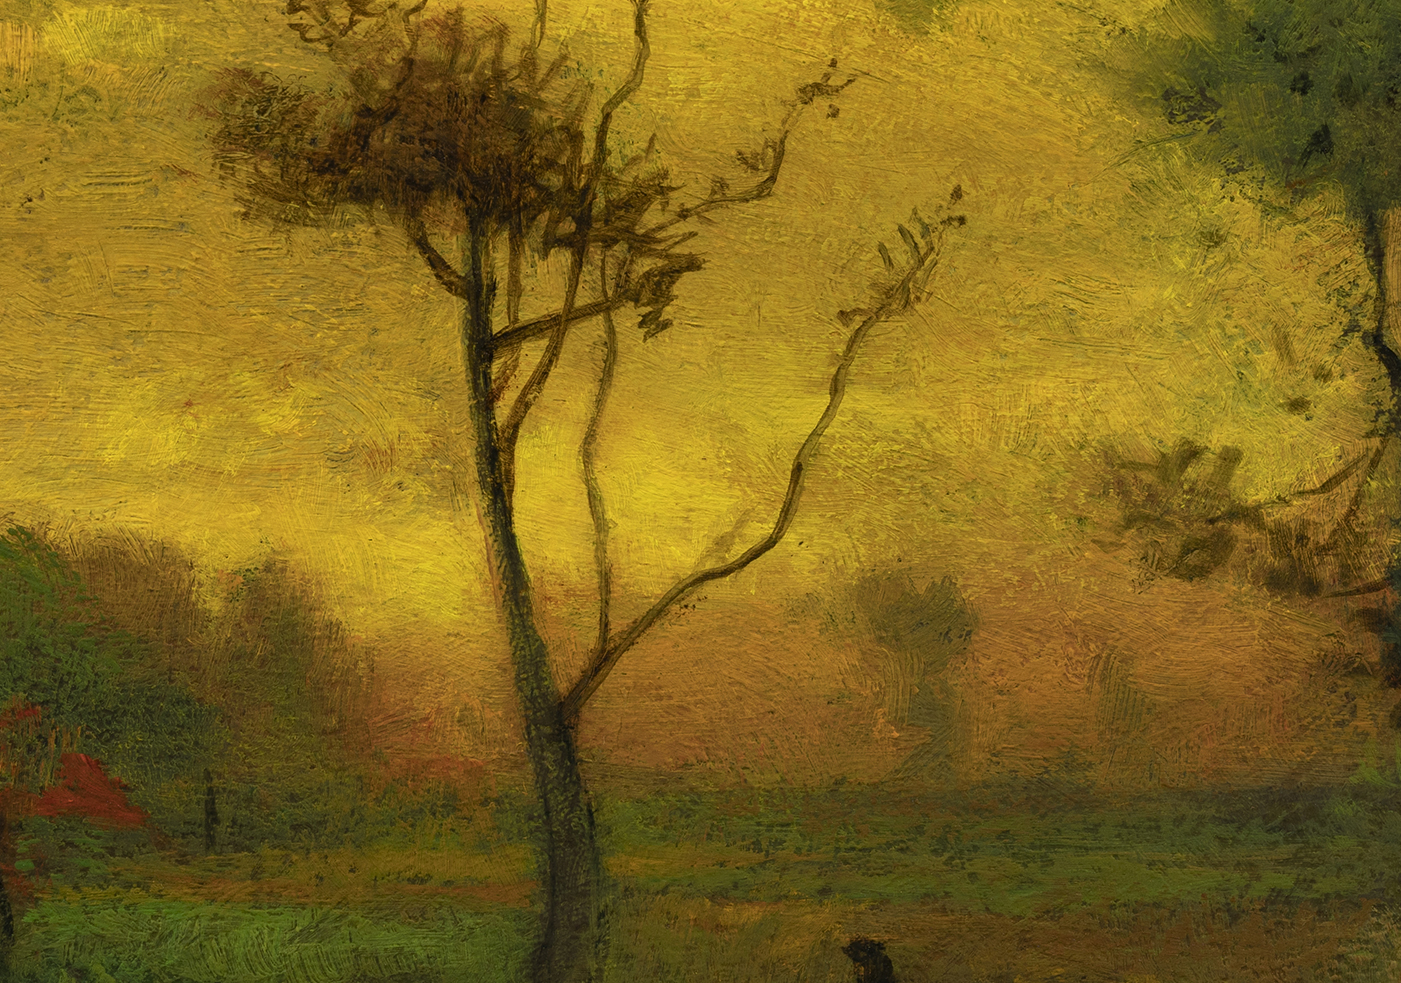 Study after George Inness - Sunrise by M Francis McCarthy - 7x10 (Detail)